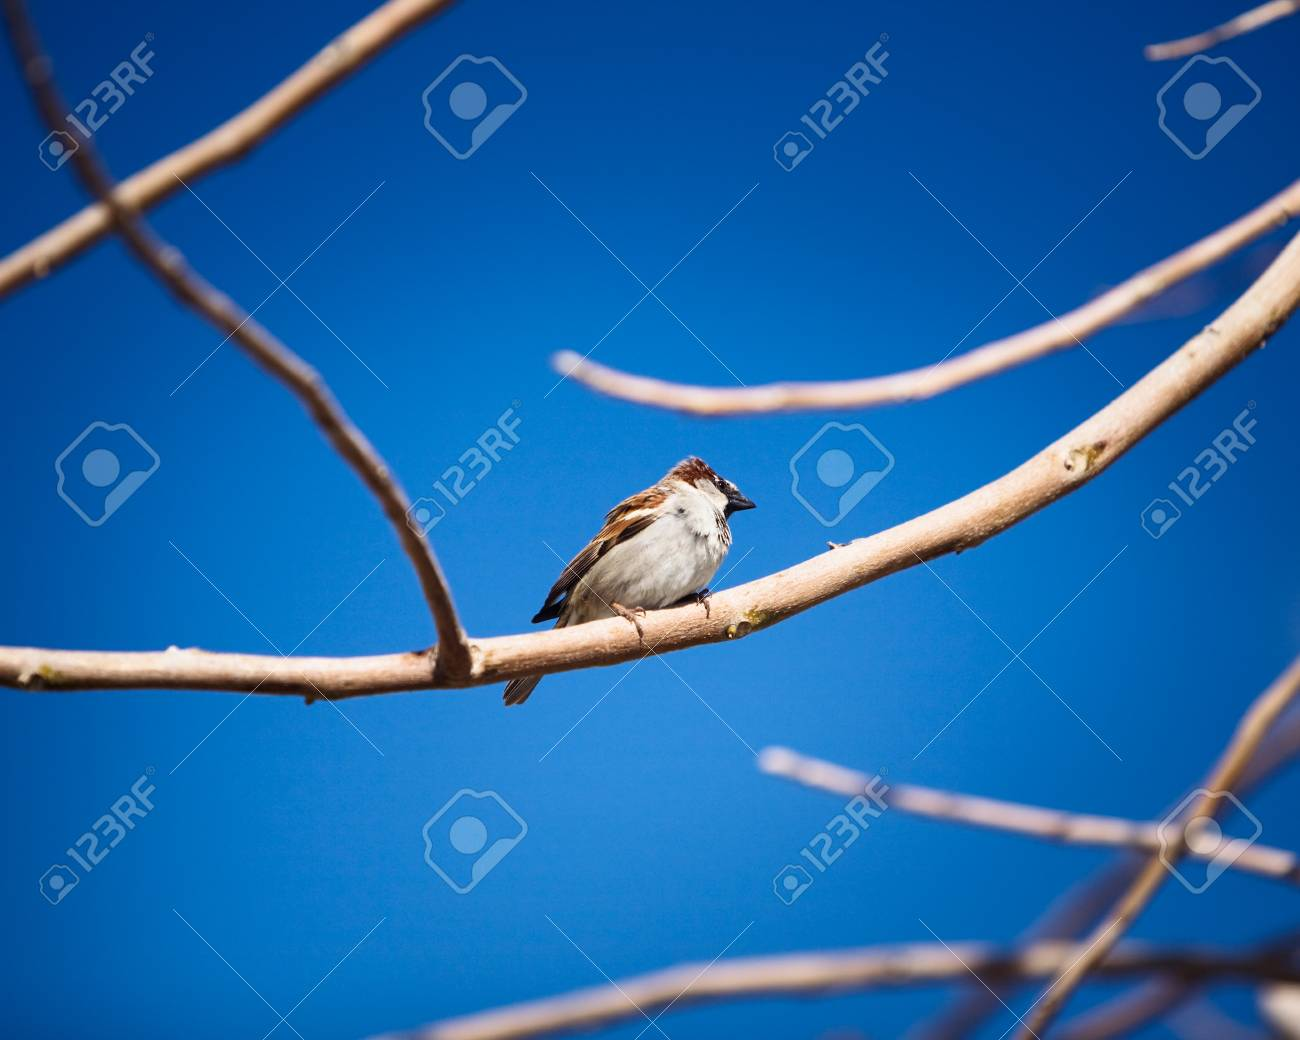 House sparrows perching on the branch Stock Photo - 9418118